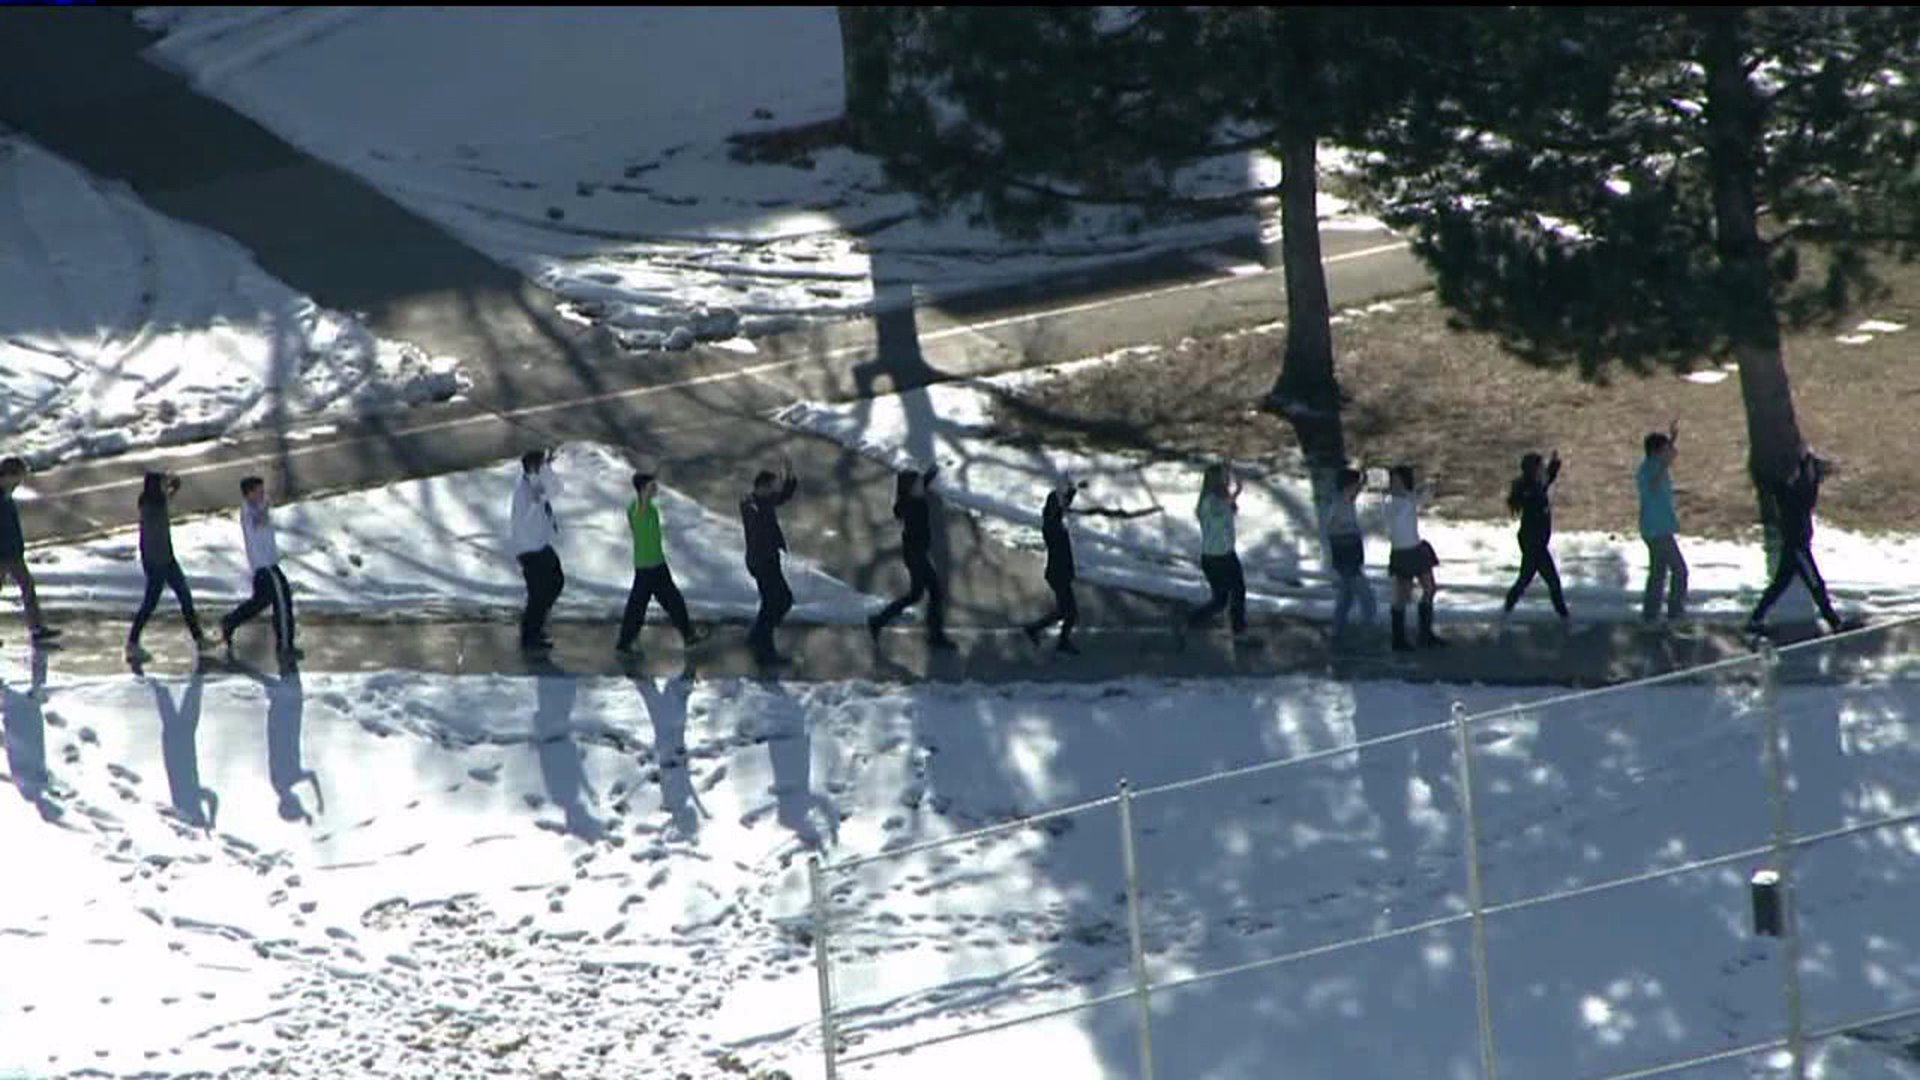 Students exit Arapahoe H.S. after shooting in Dec. 2013